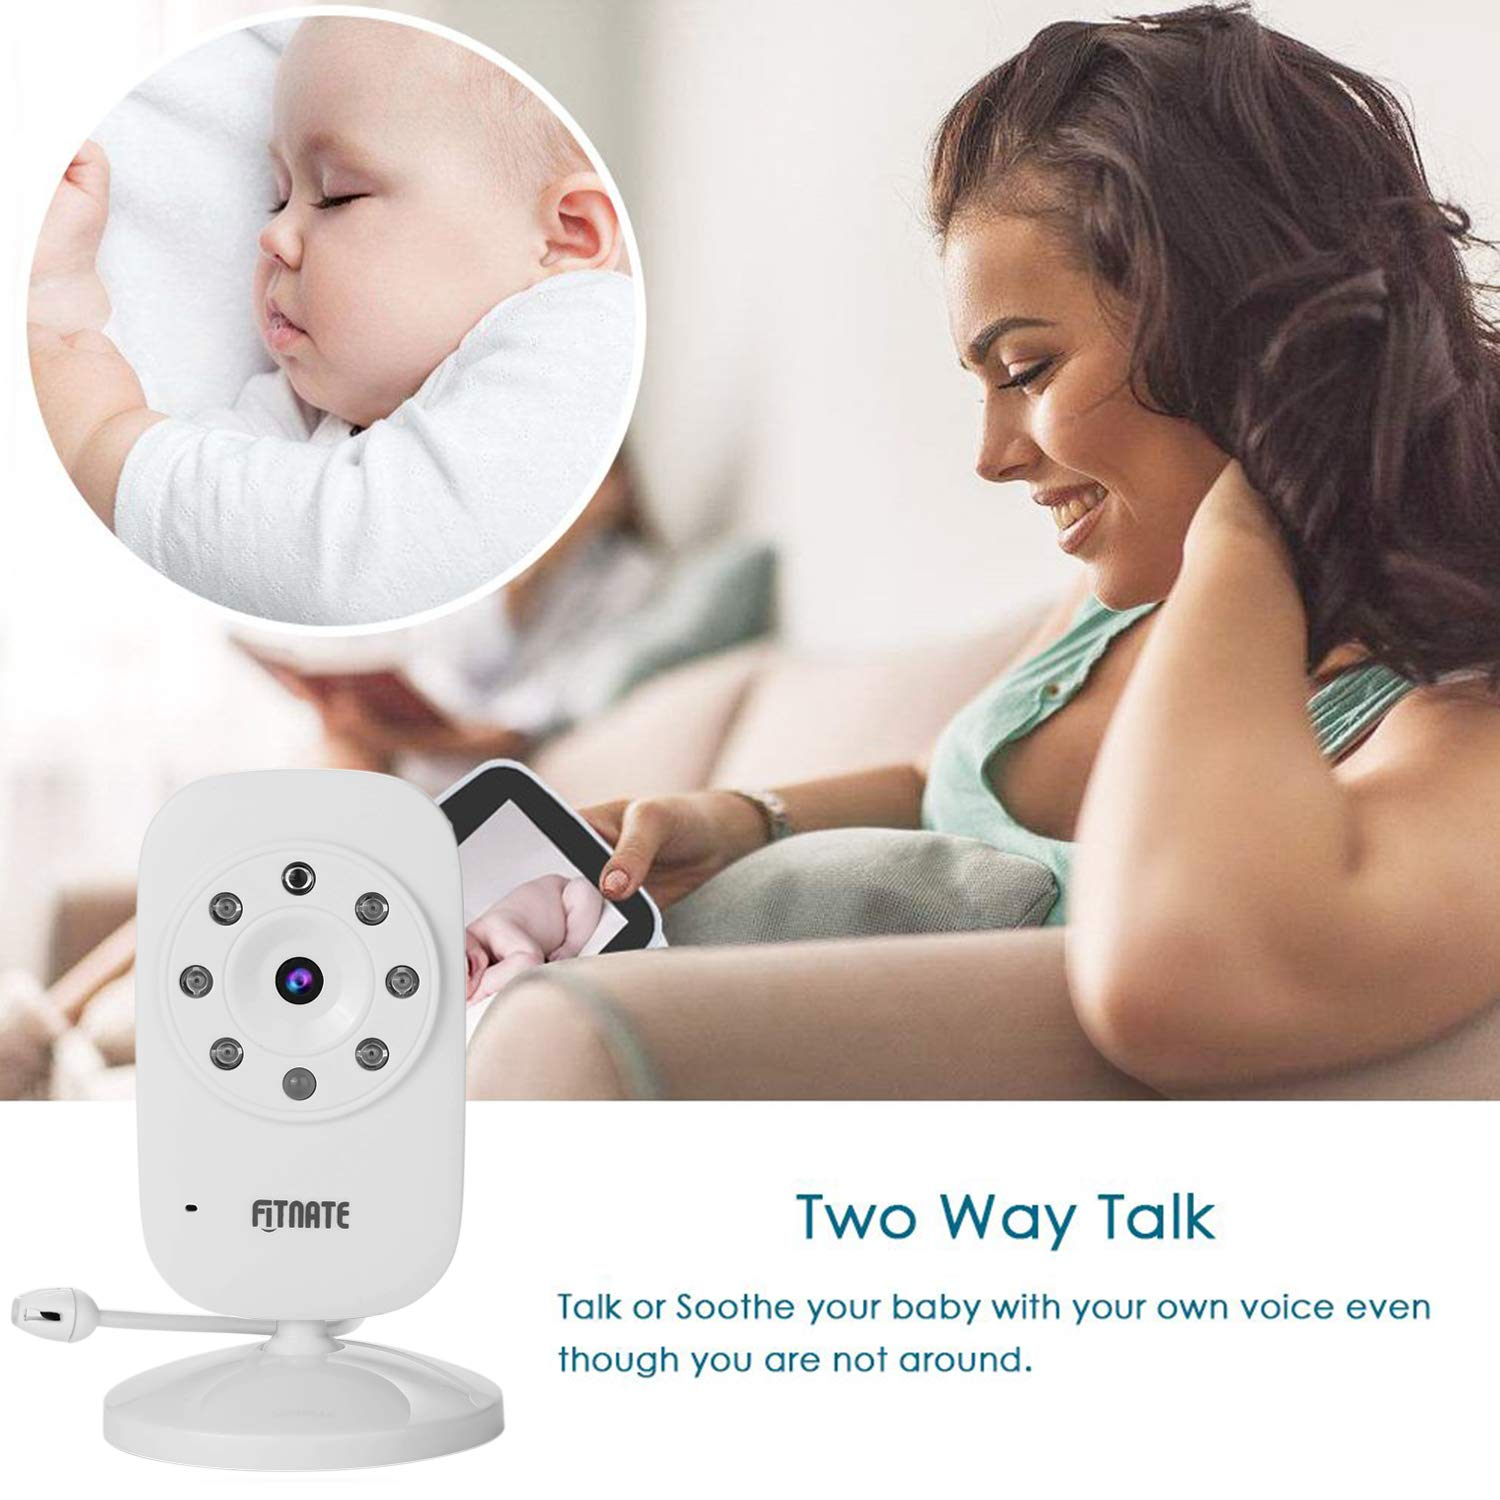 Two Way Talk Camera With Audio /& Infrared Night Vision For 3.5 Baby Monitors BAIESHIJI FITNATE Baby Monitor Camera Anmade,UBBCARE Support Multi Cameras BAIESHIJI,FITNATE LEXNHOM,LAPUTA